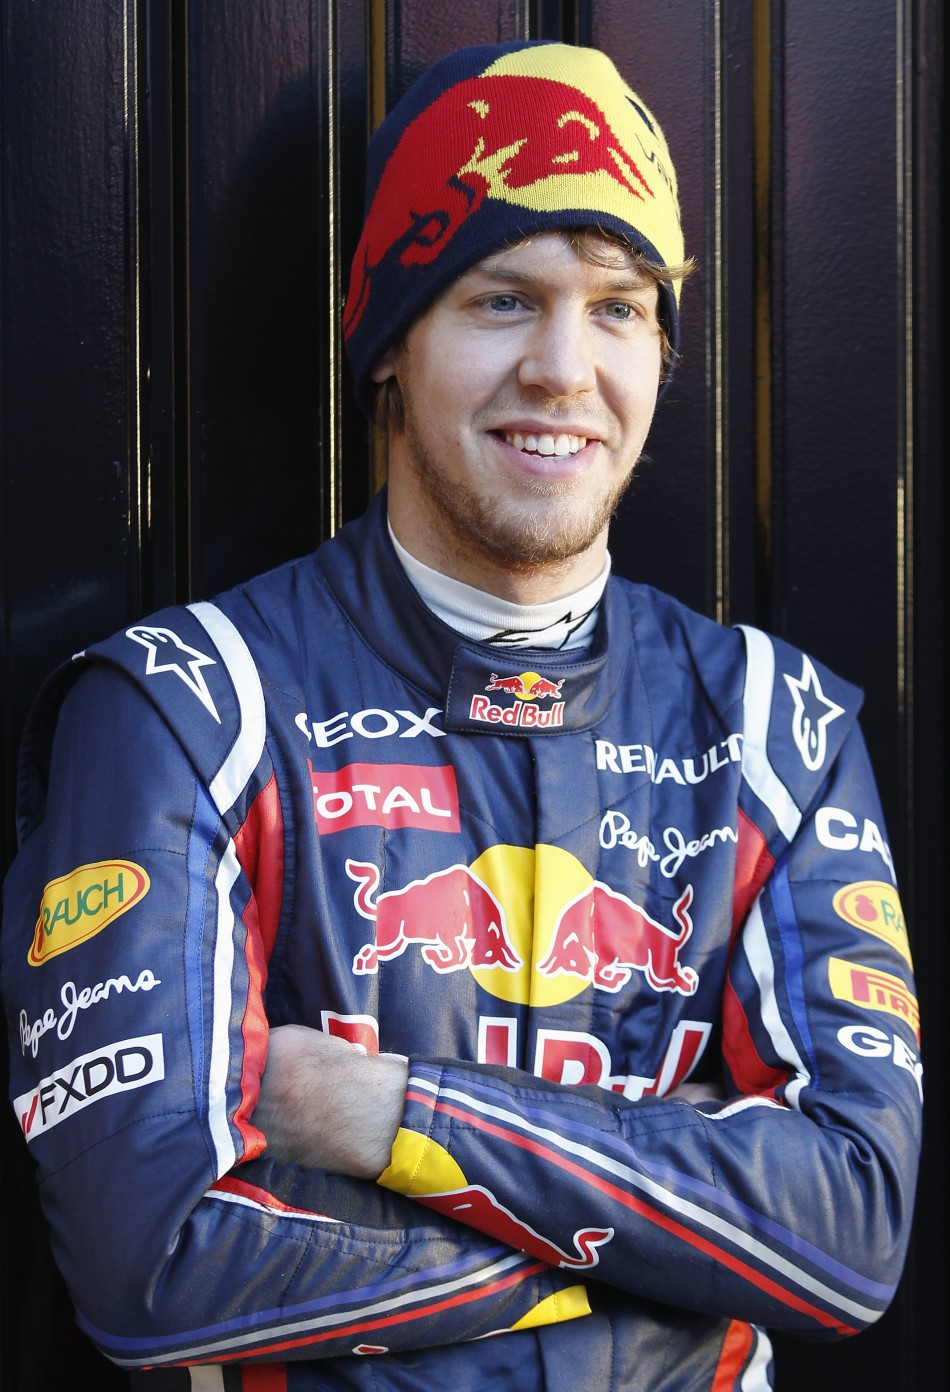 Red Bull Formula One driver Sebastian Vettel of Germany poses for the media in Valencia.